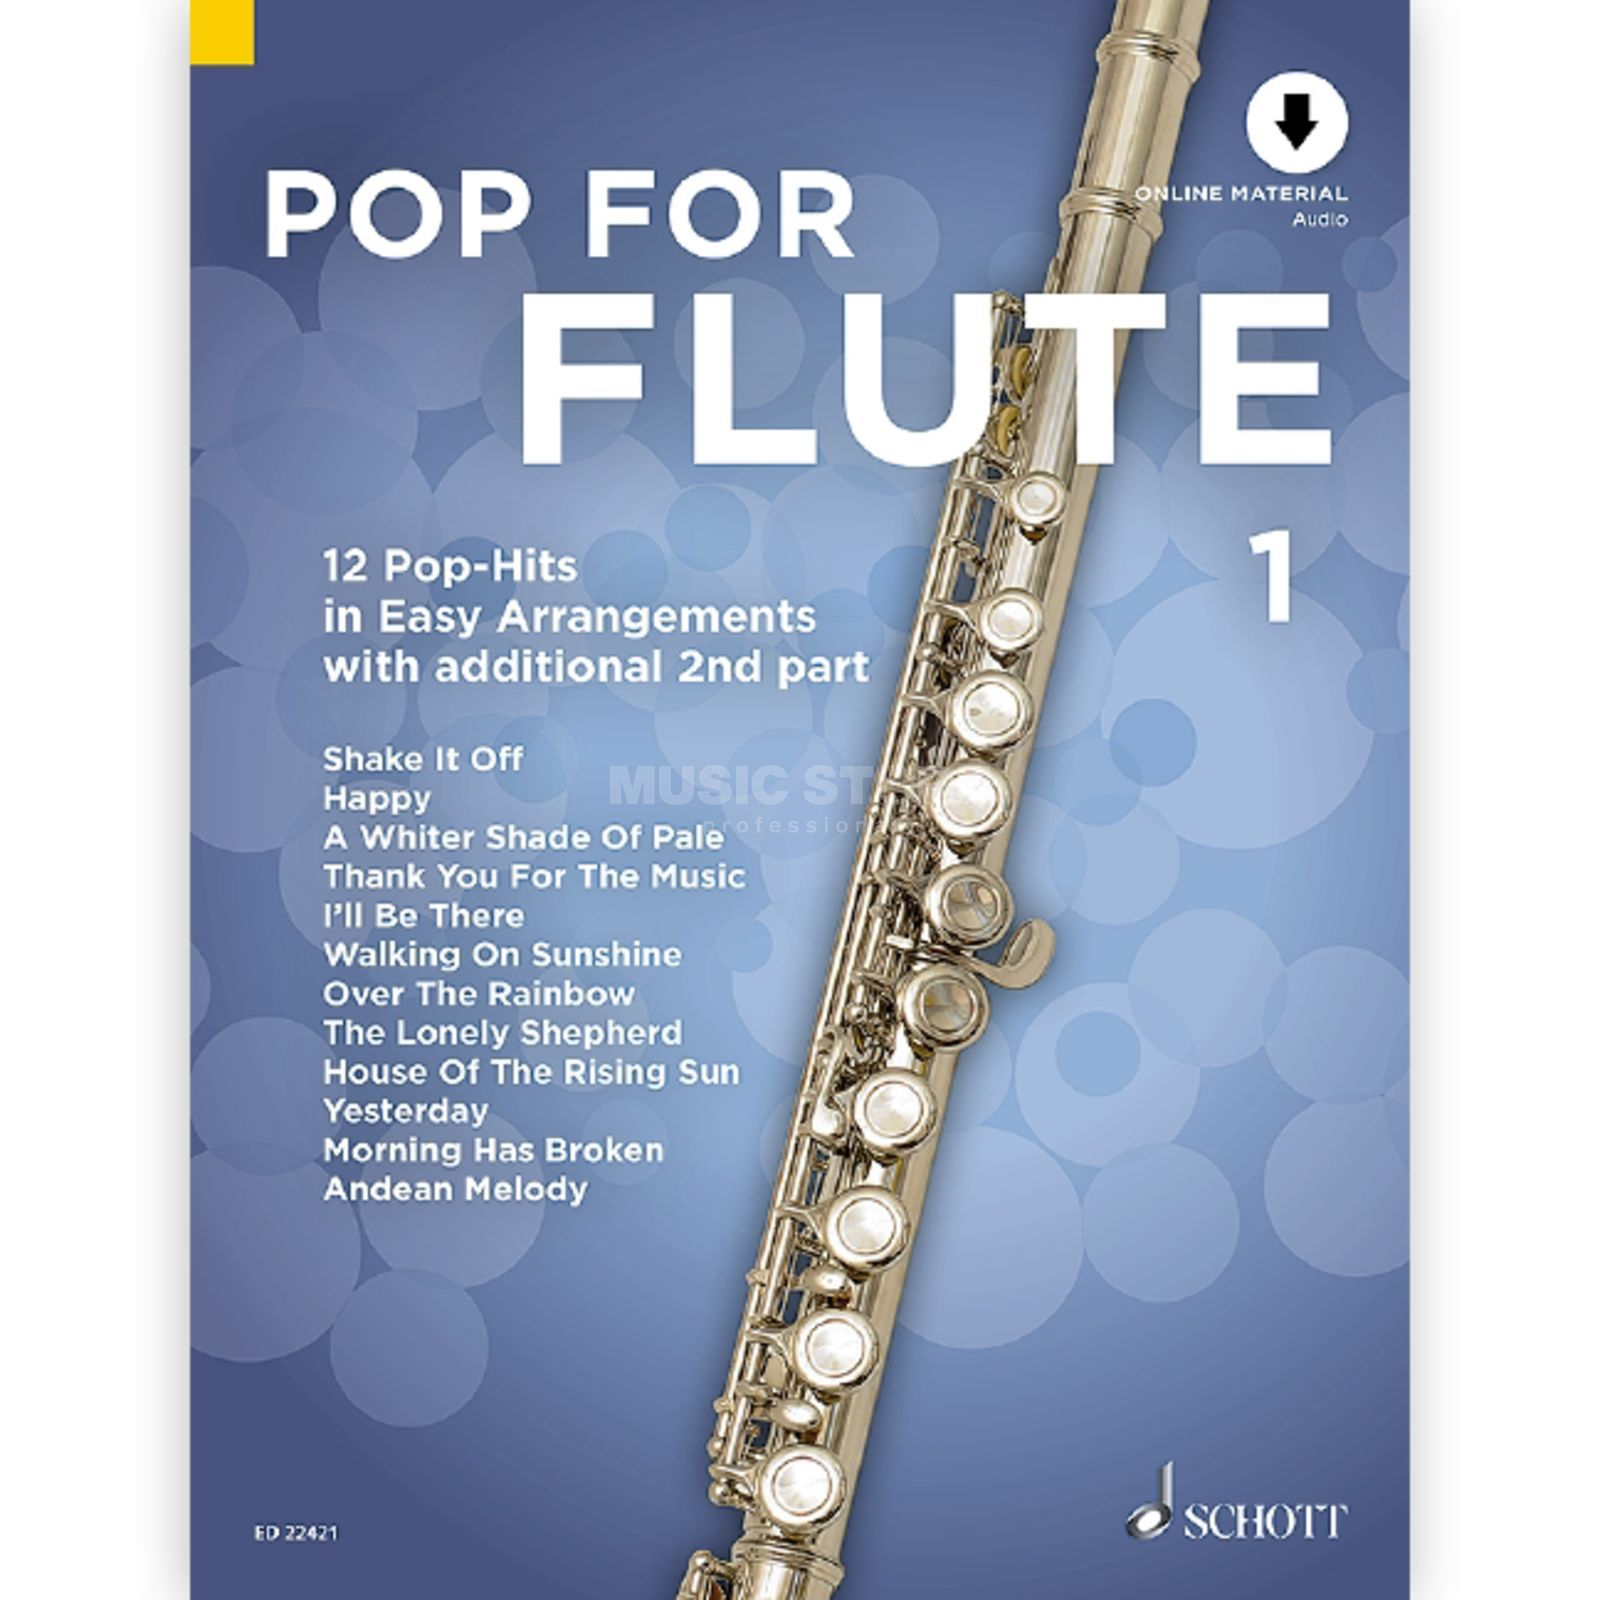 Schott Music Pop For Flute 1 Image du produit